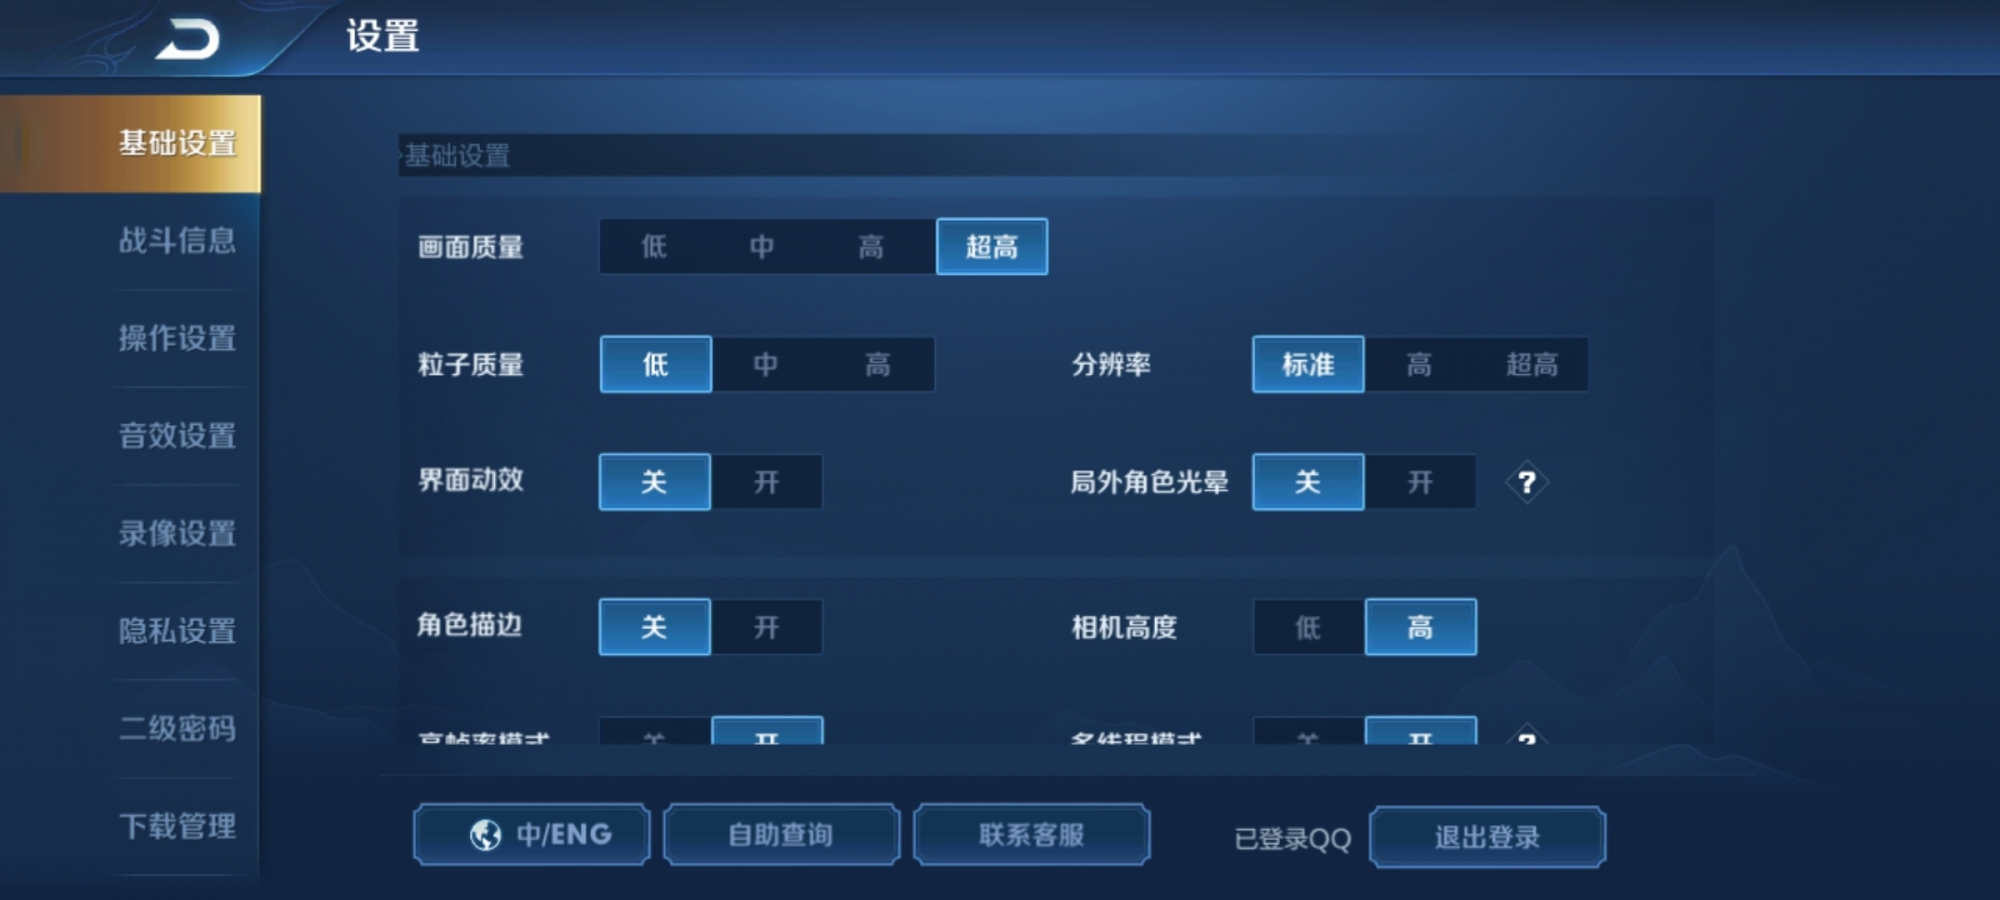 Screenshot_20200130_220424_com.tencent.tmgp.sgame.jpg